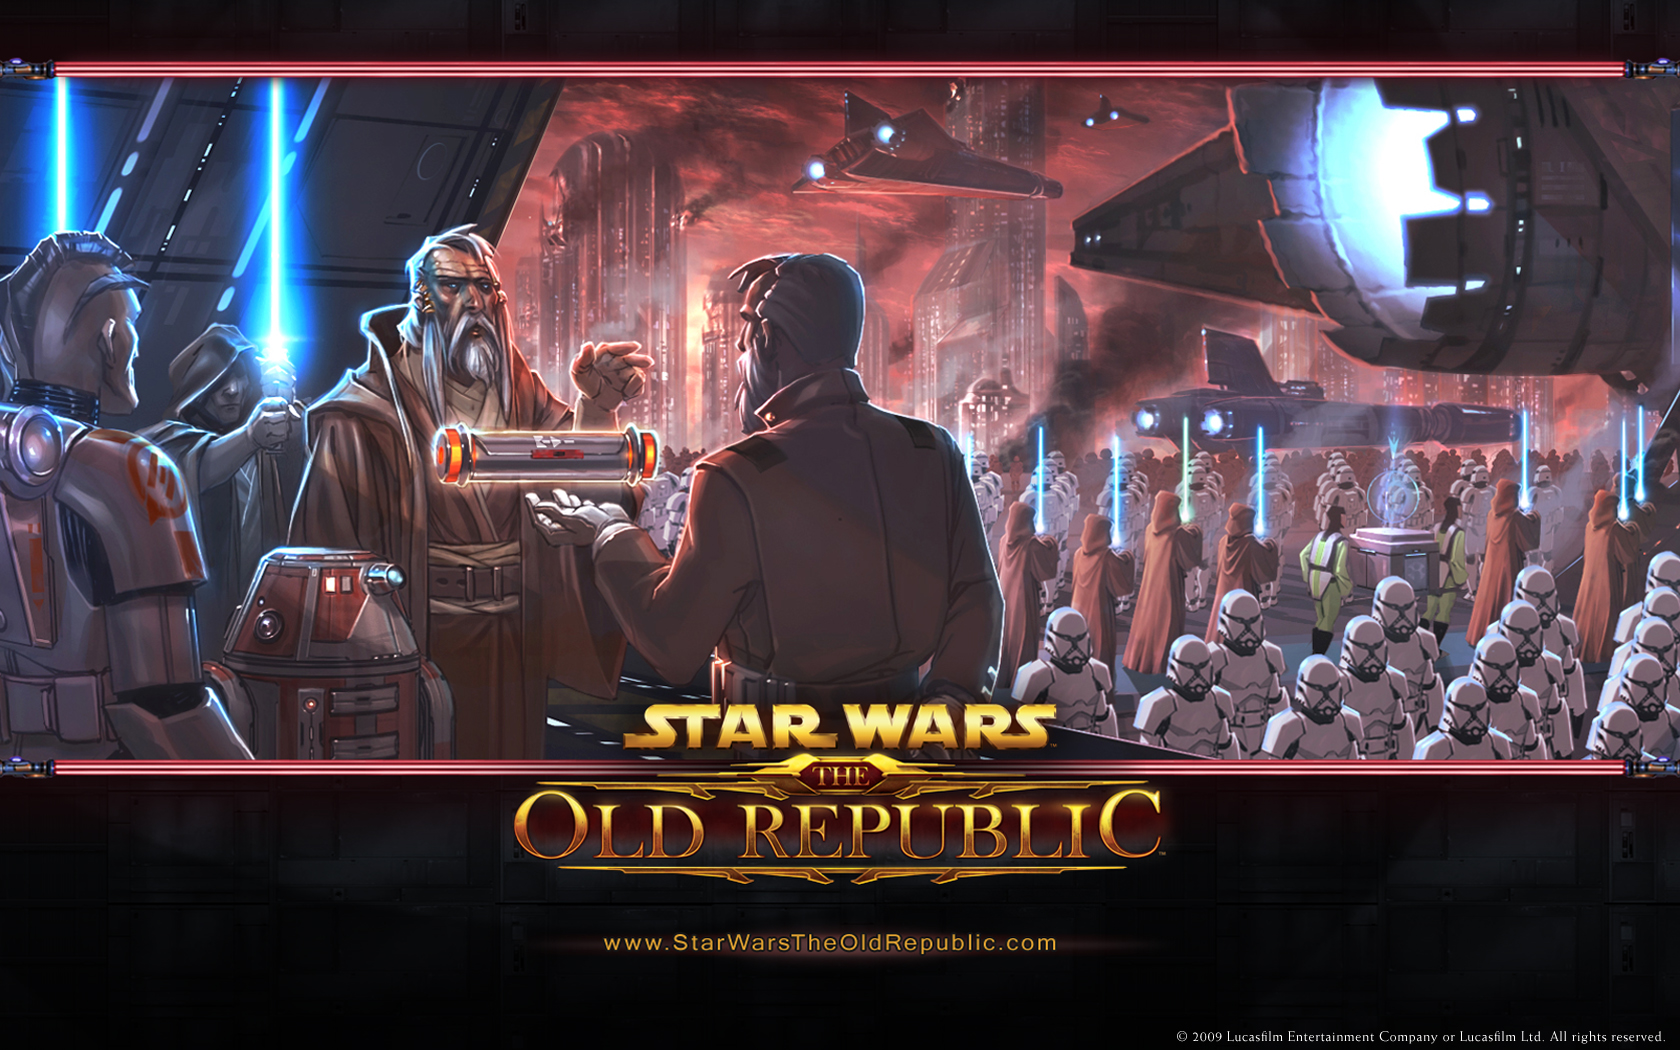 Star Wars The Old Republic 2011 Promotional Art Mobygames